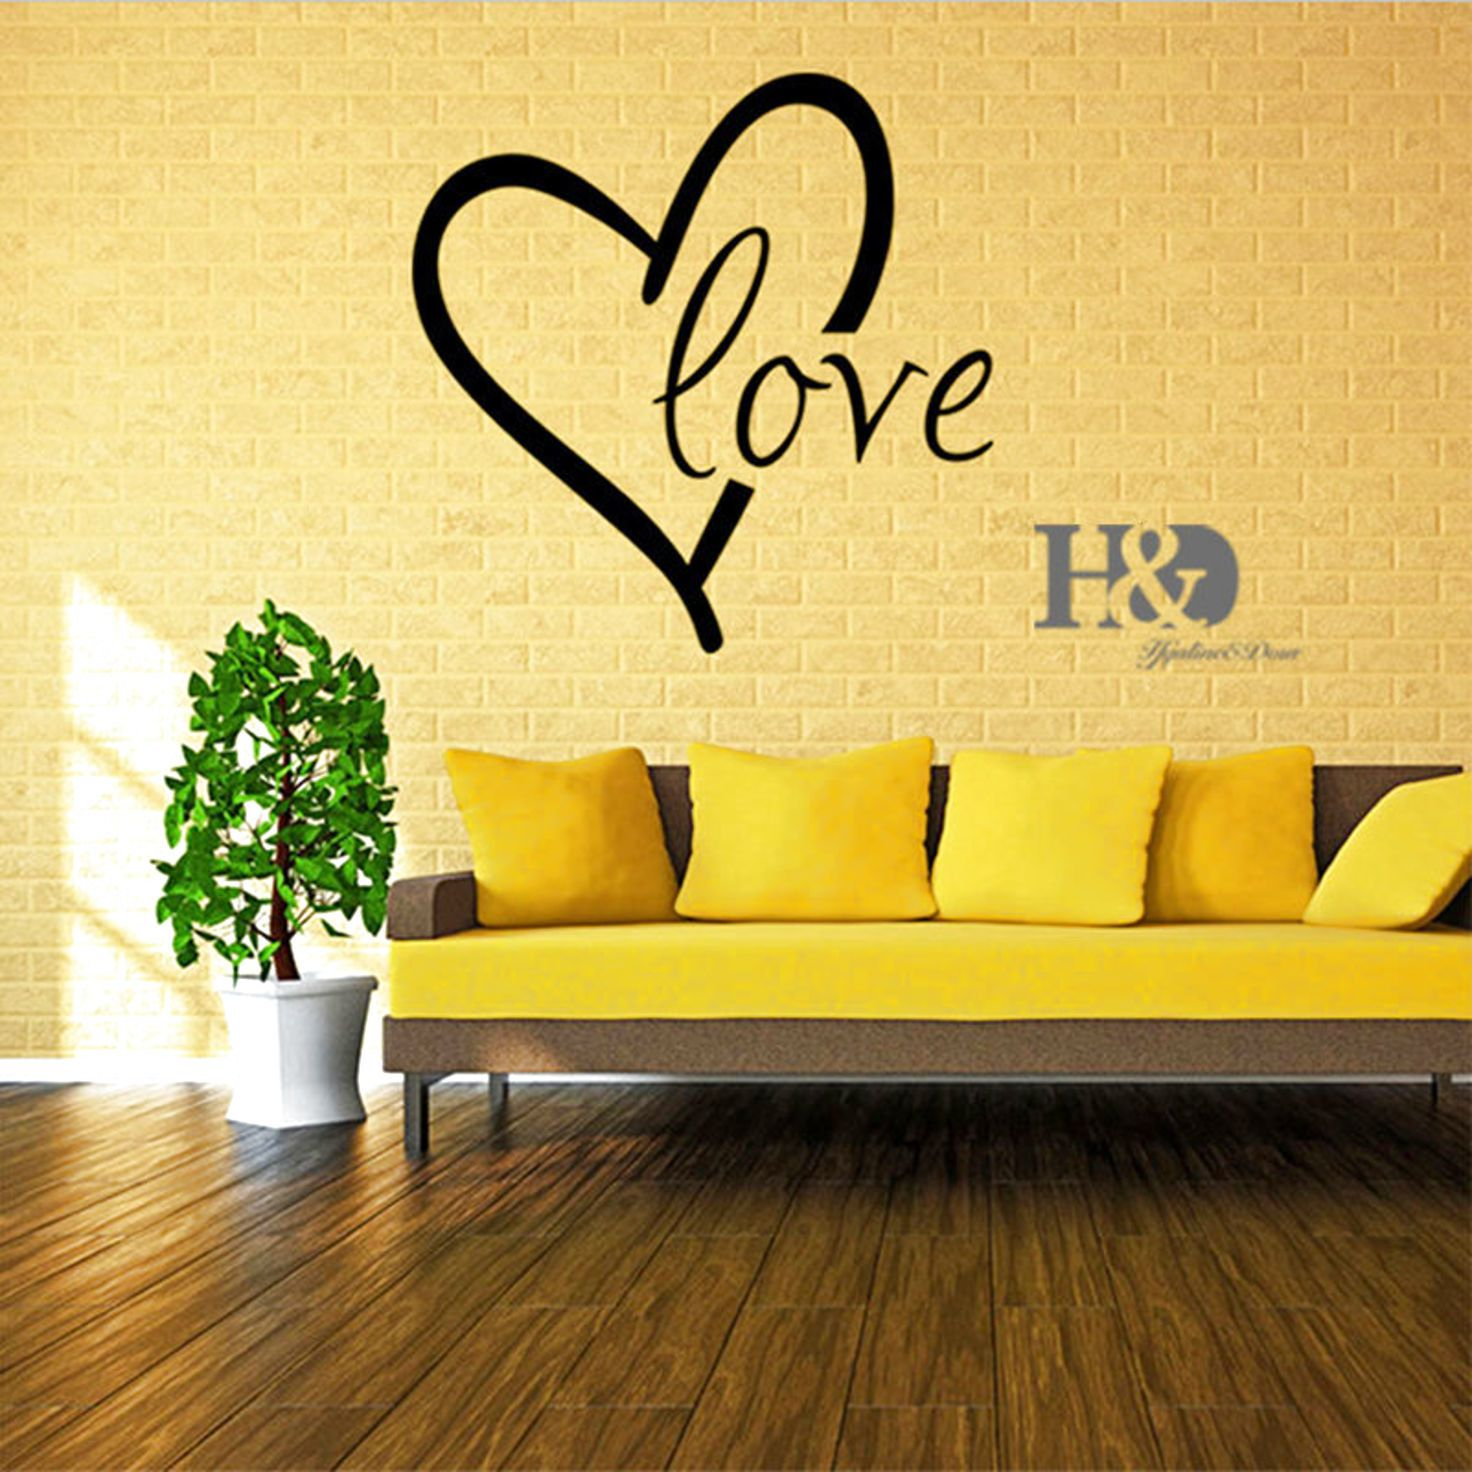 LOVE Vinyl Art DIY Wall Decal Sticker Decor Home Room Removable ...